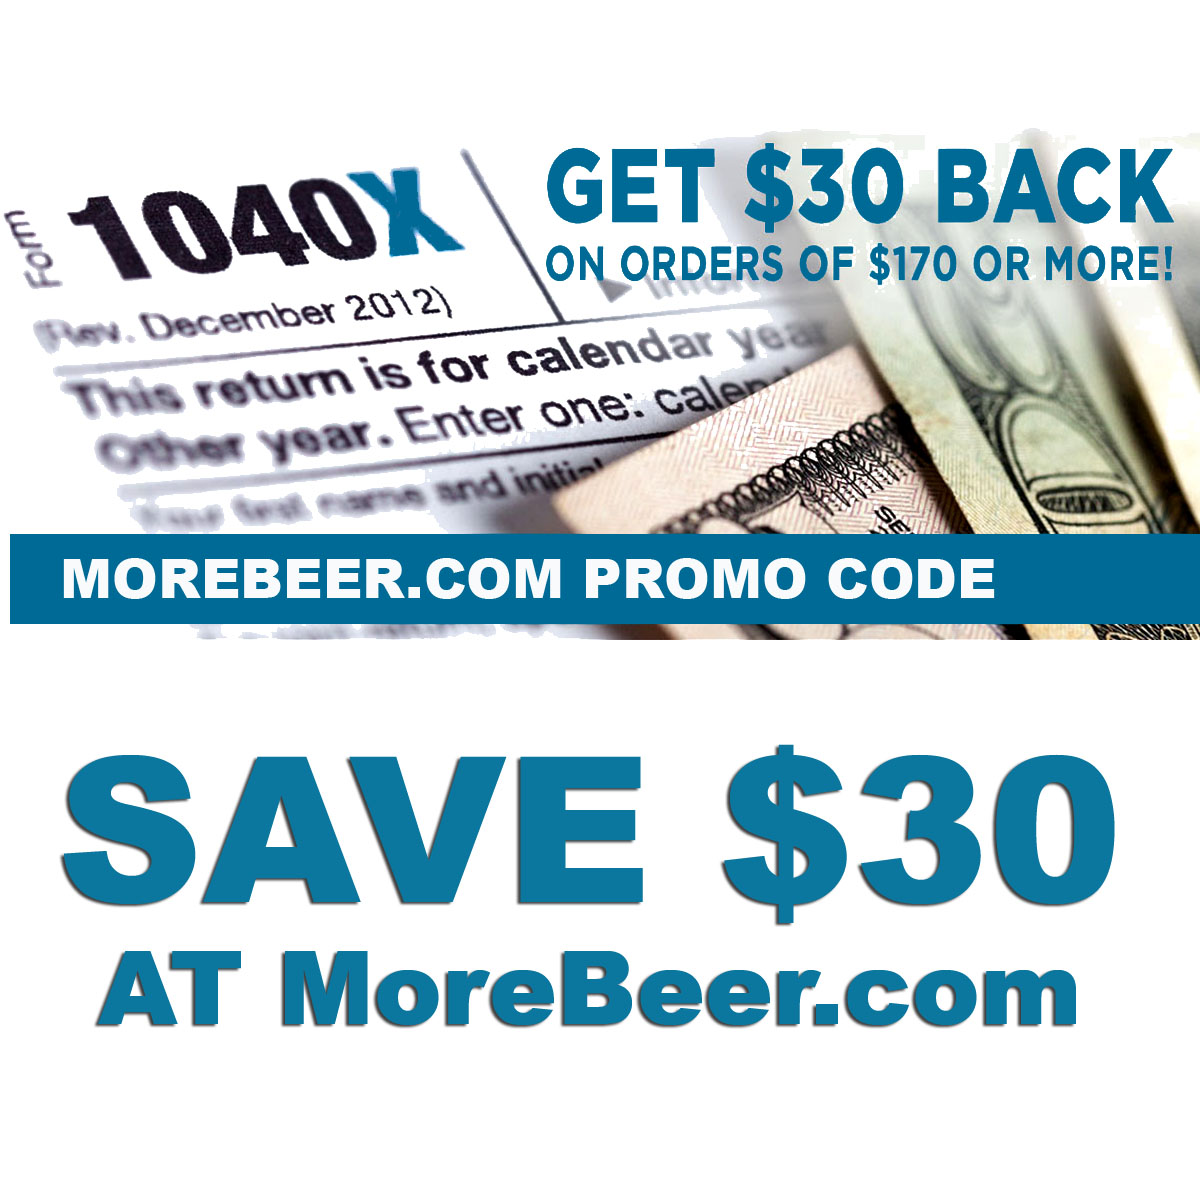 Home Wine Making Coupon Codes for Get $30 Back On Orders Of $170 Or More at MoreBeer.com when you use this More Beer Promo Code Coupon Code